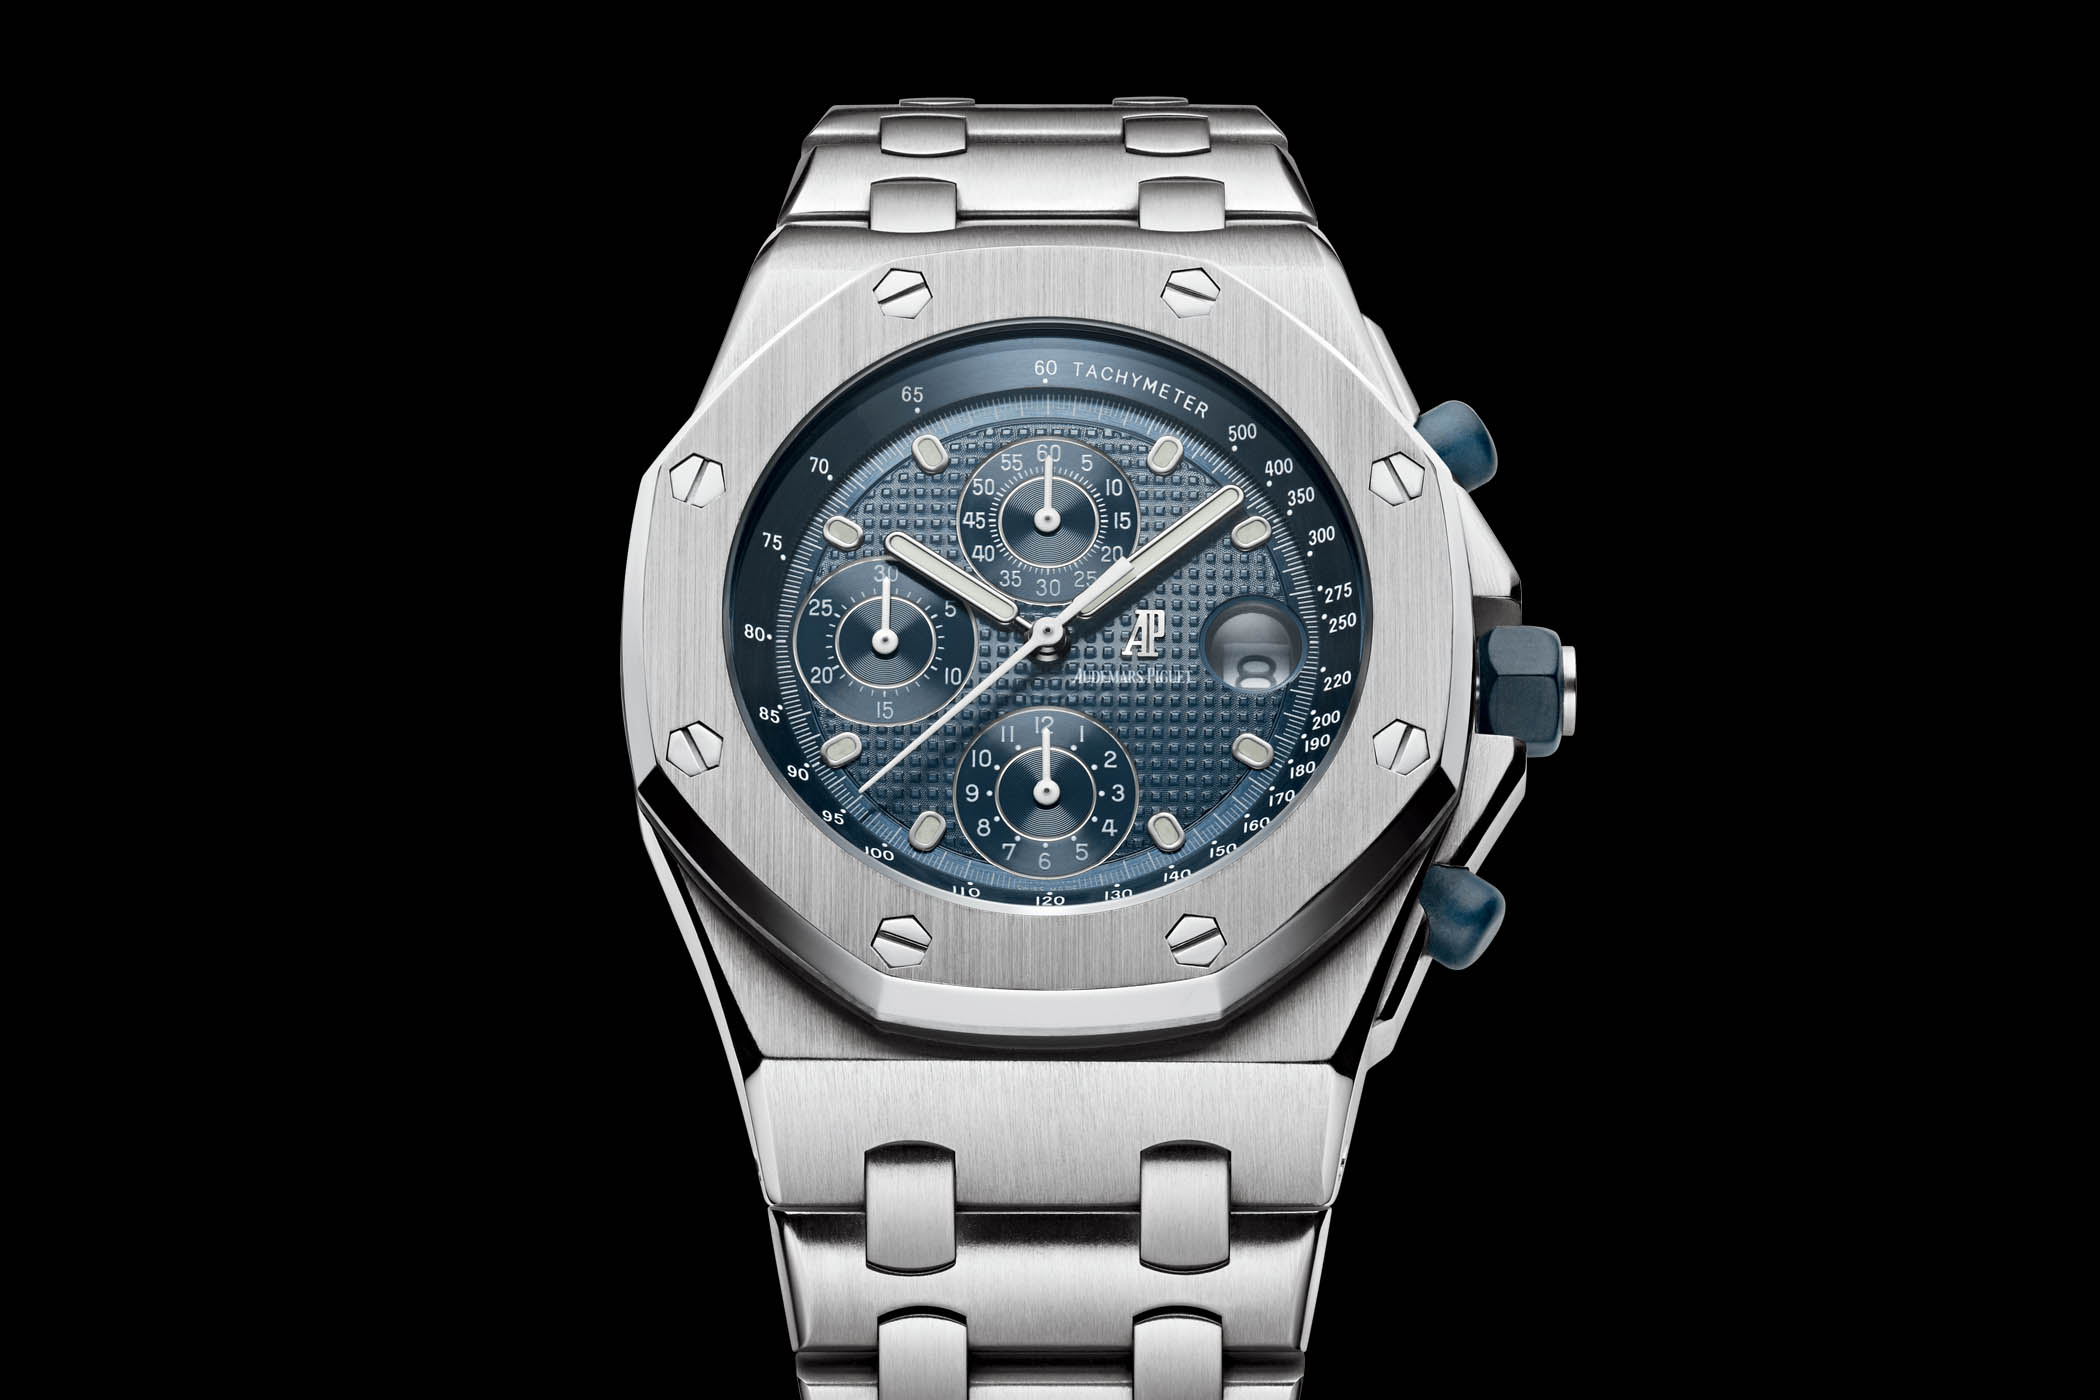 Audemars Piguet Royal Oak Offshore Chronograph ref. 25721ST first version 1993